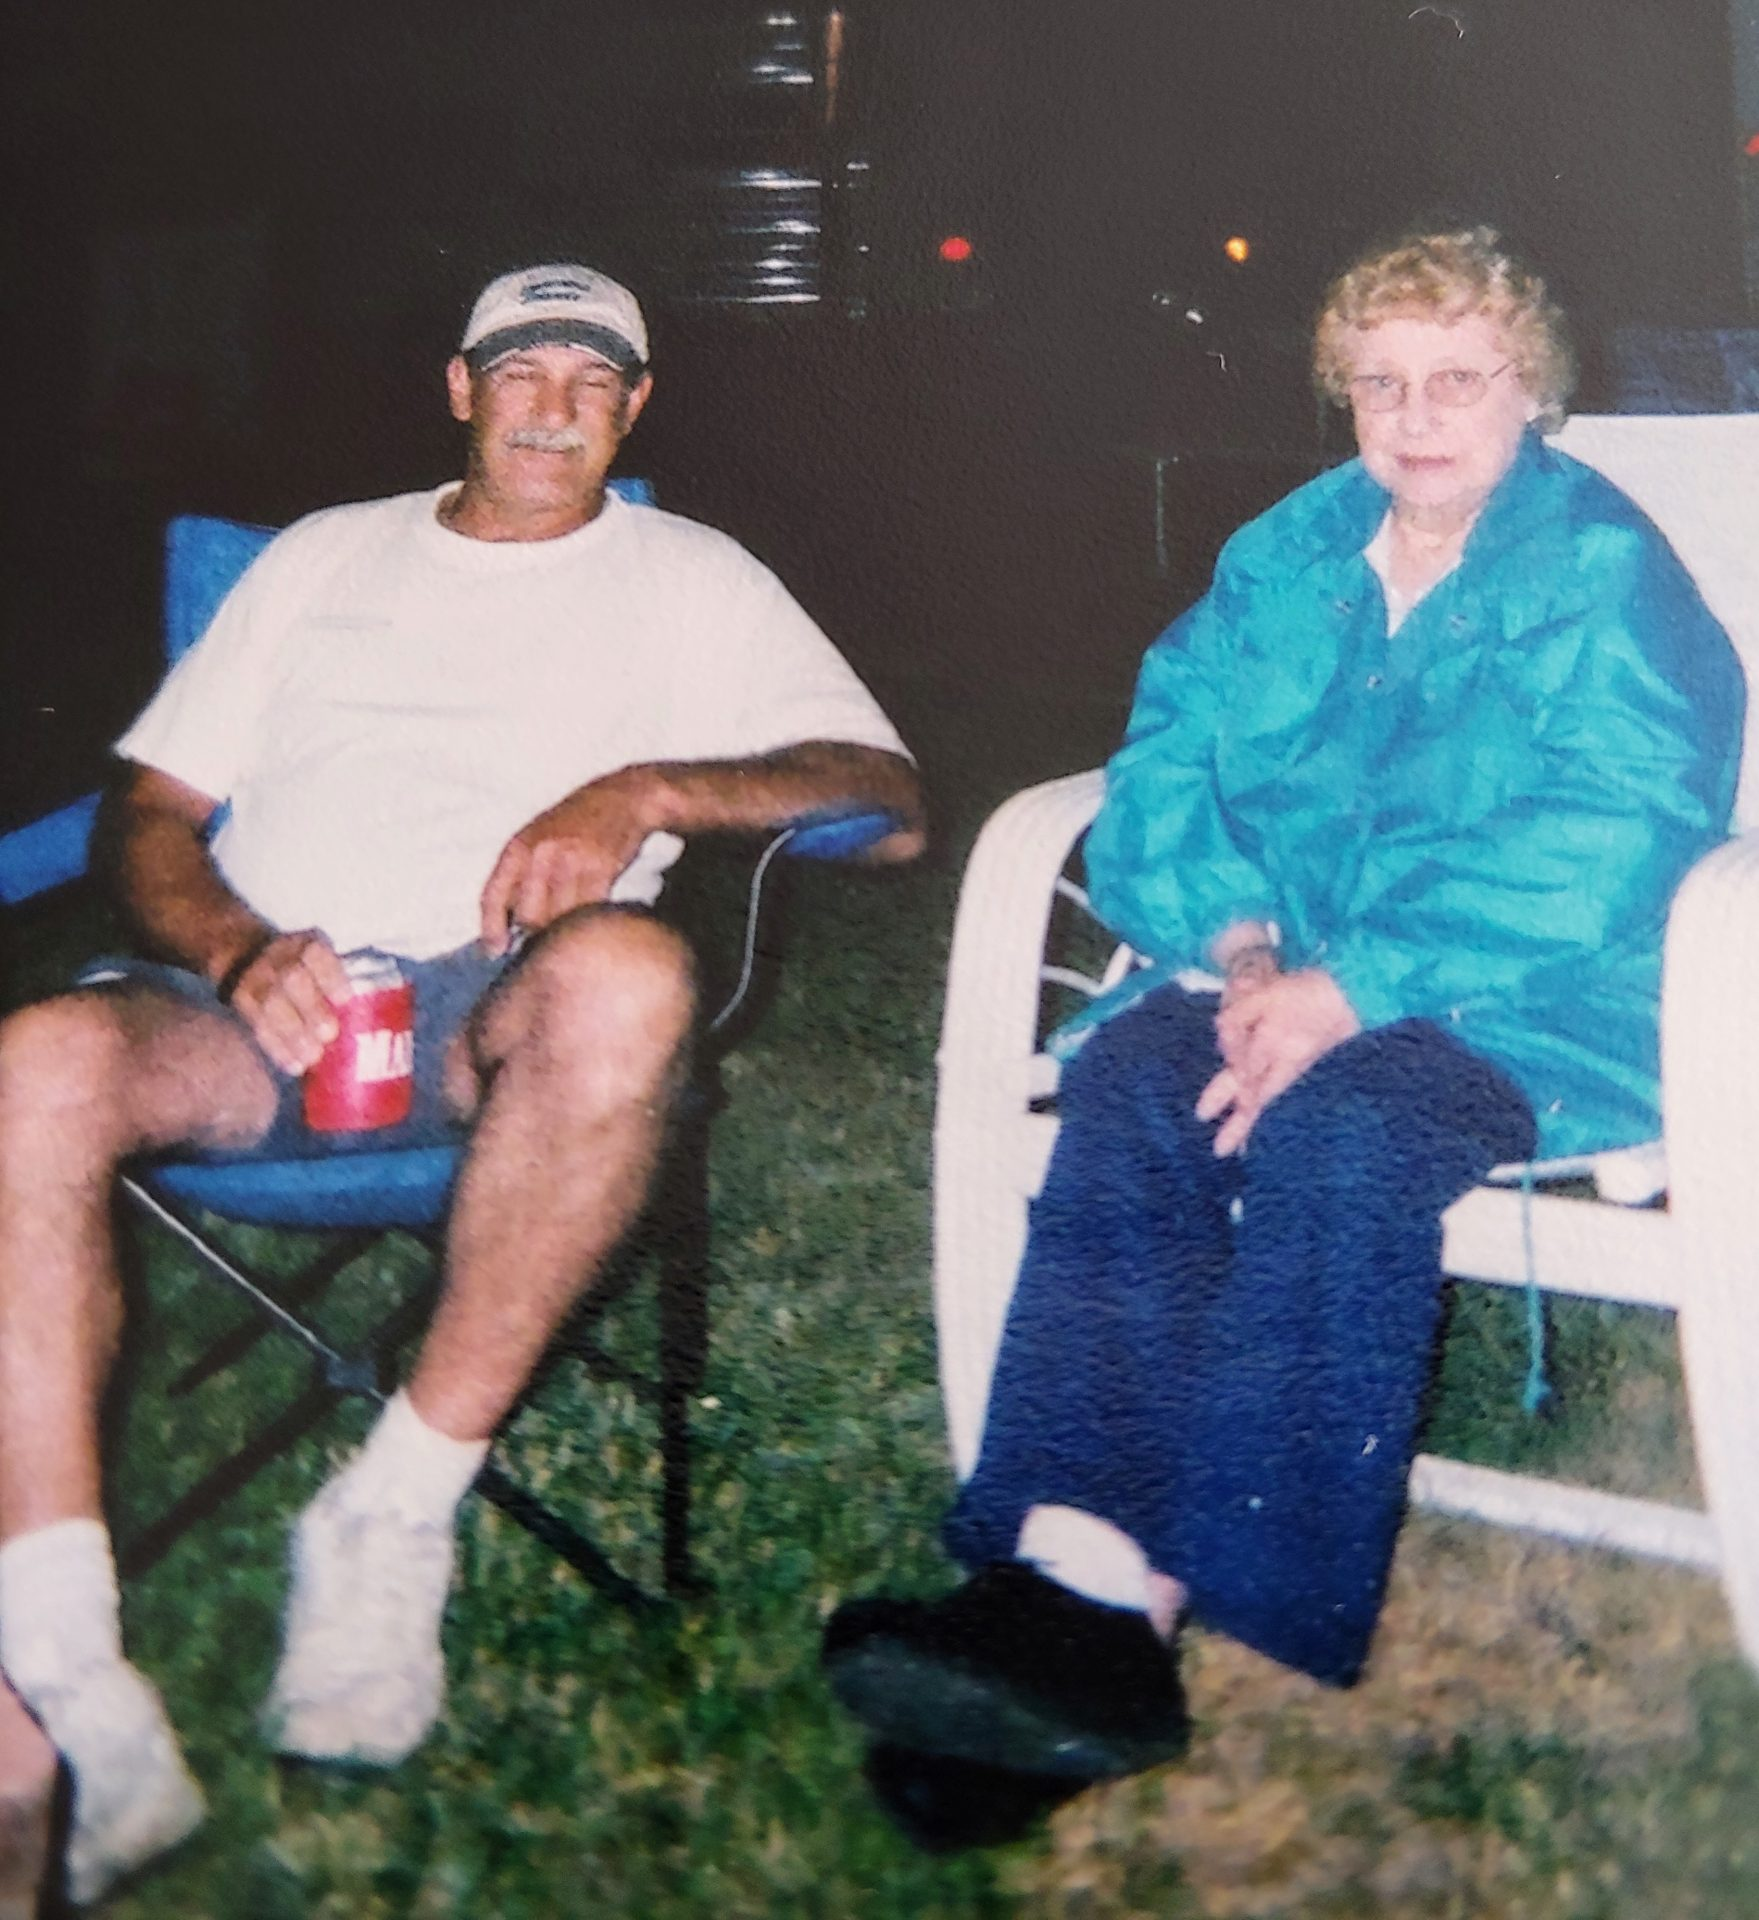 Bob and his mom, Mary Cartino by the camp fire